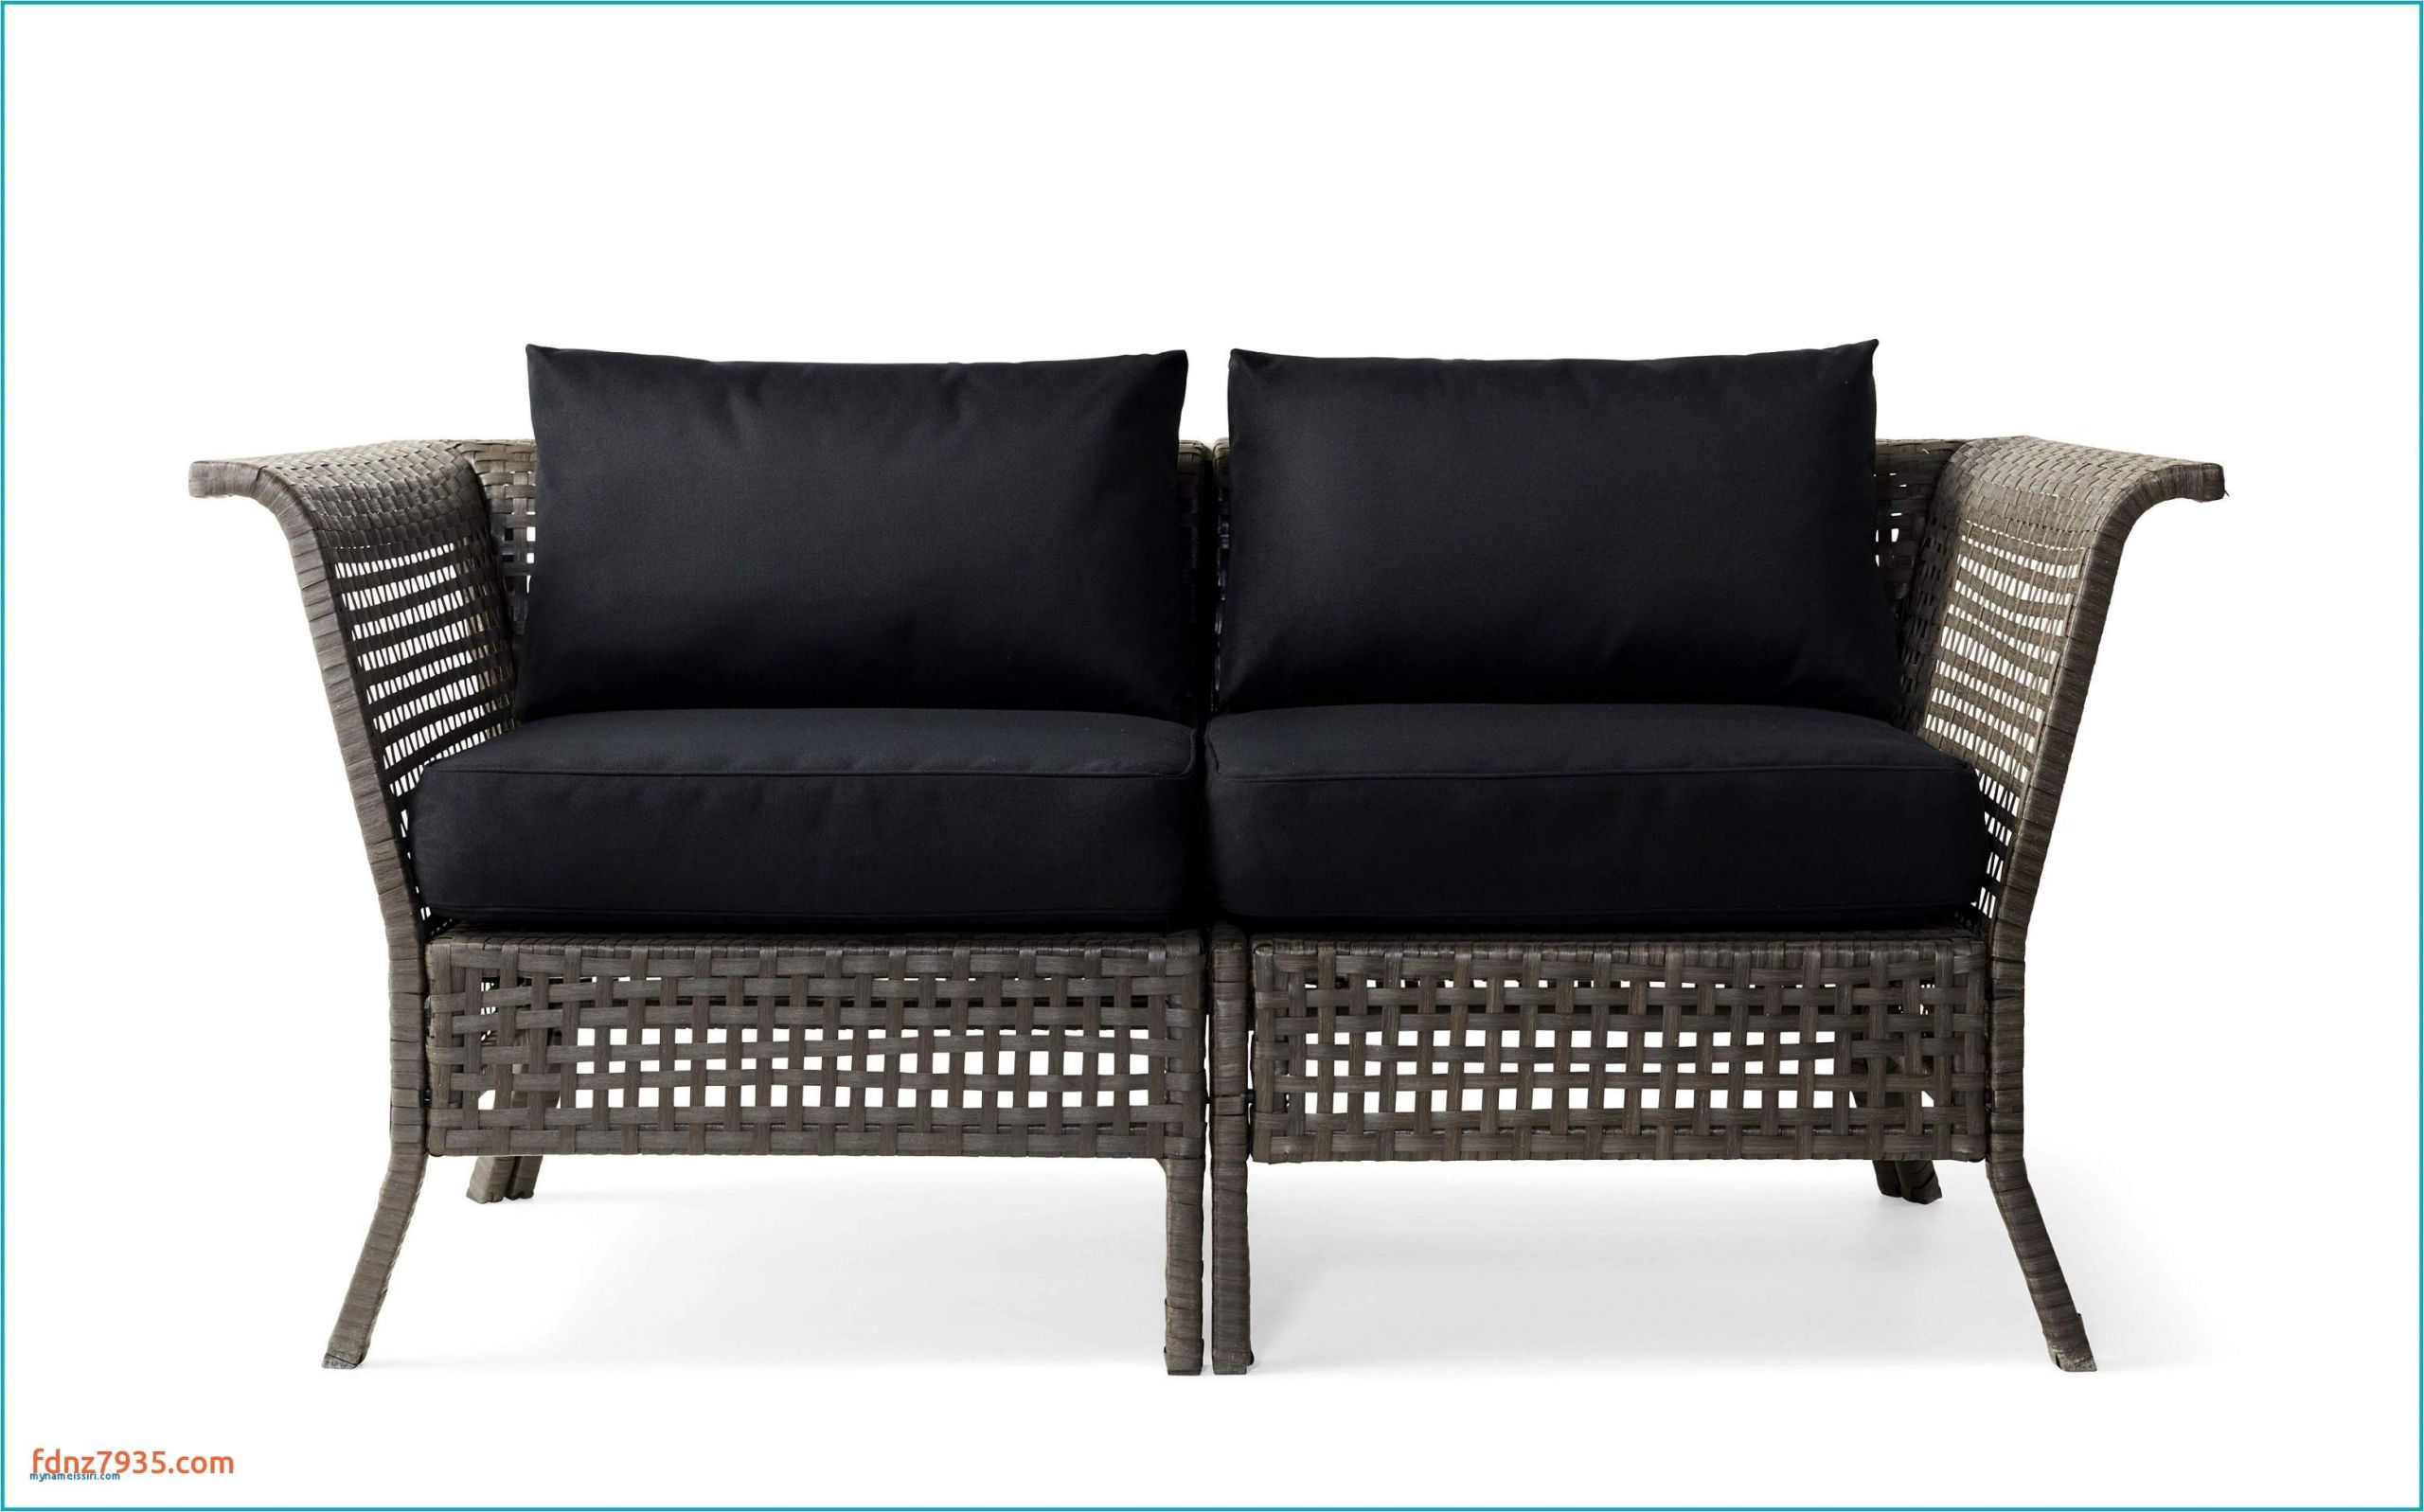 sofa vs couch sofa vs couch awesome sofa or couches elegant rattan couch 0d of sofa vs couch